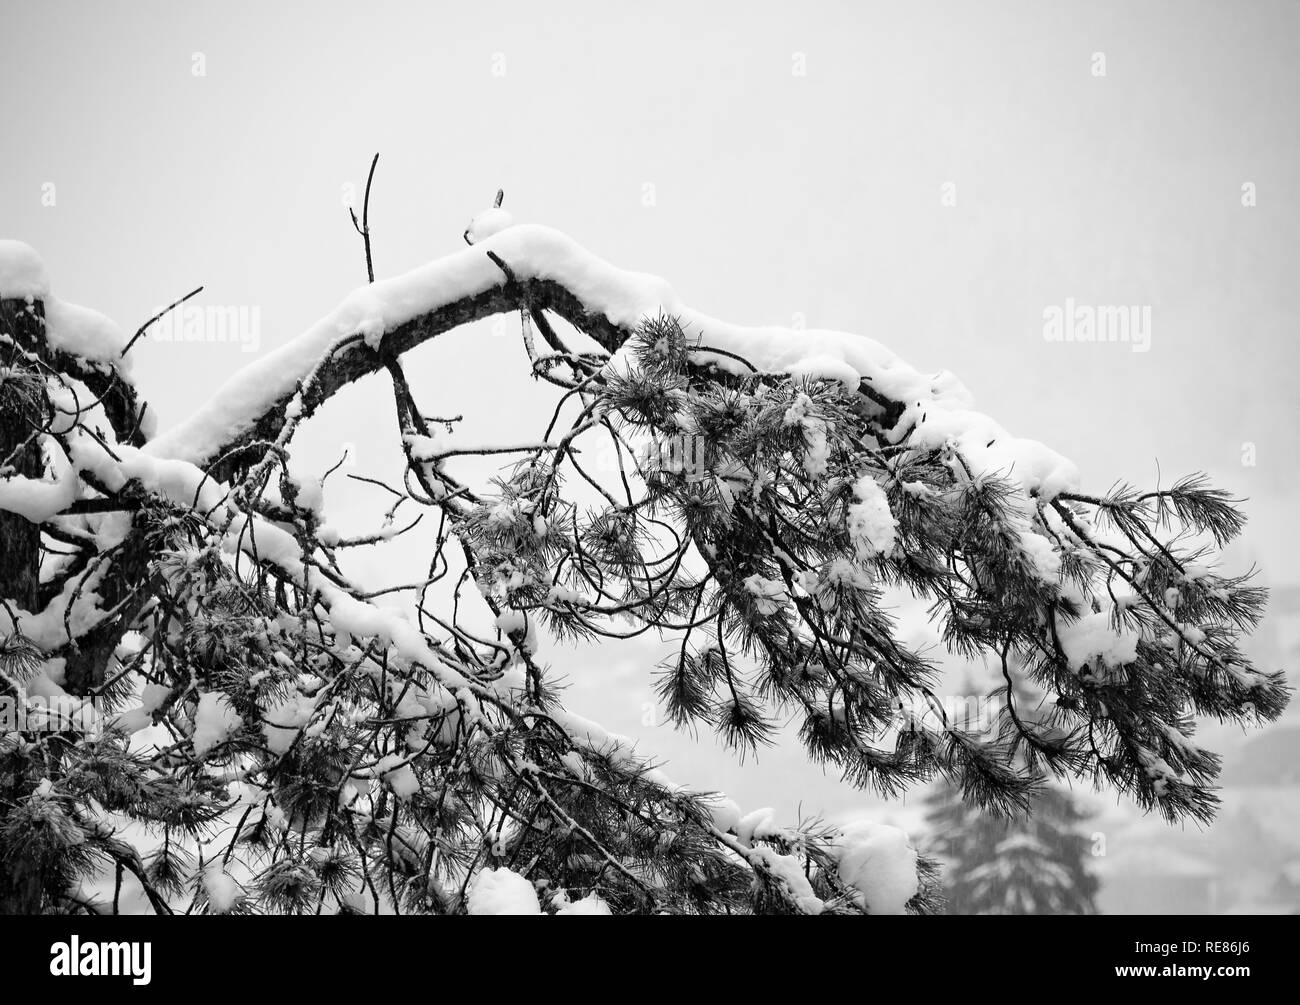 The Bough of a Pine Tree Covered in Fresh Snow in the French Ski Resort Town of Morzine Haute Savoie Portes du Soleil France - Stock Image